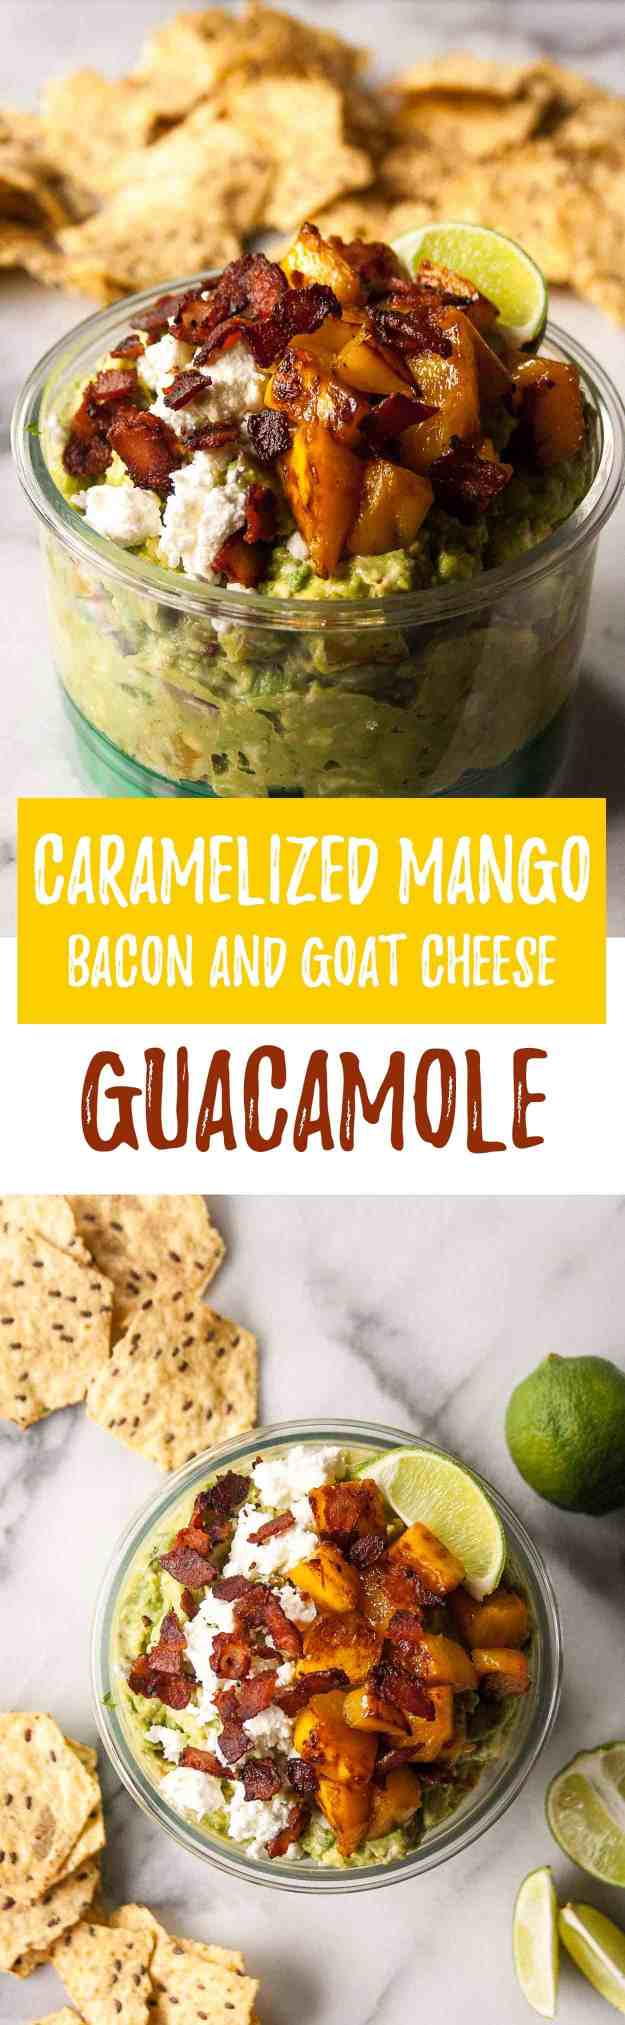 Caramelized Mango Bacon and Goat Cheese Guacamole | #ad #guaclock #casabella #guacamole #cincodemayo | hungrybynature.com